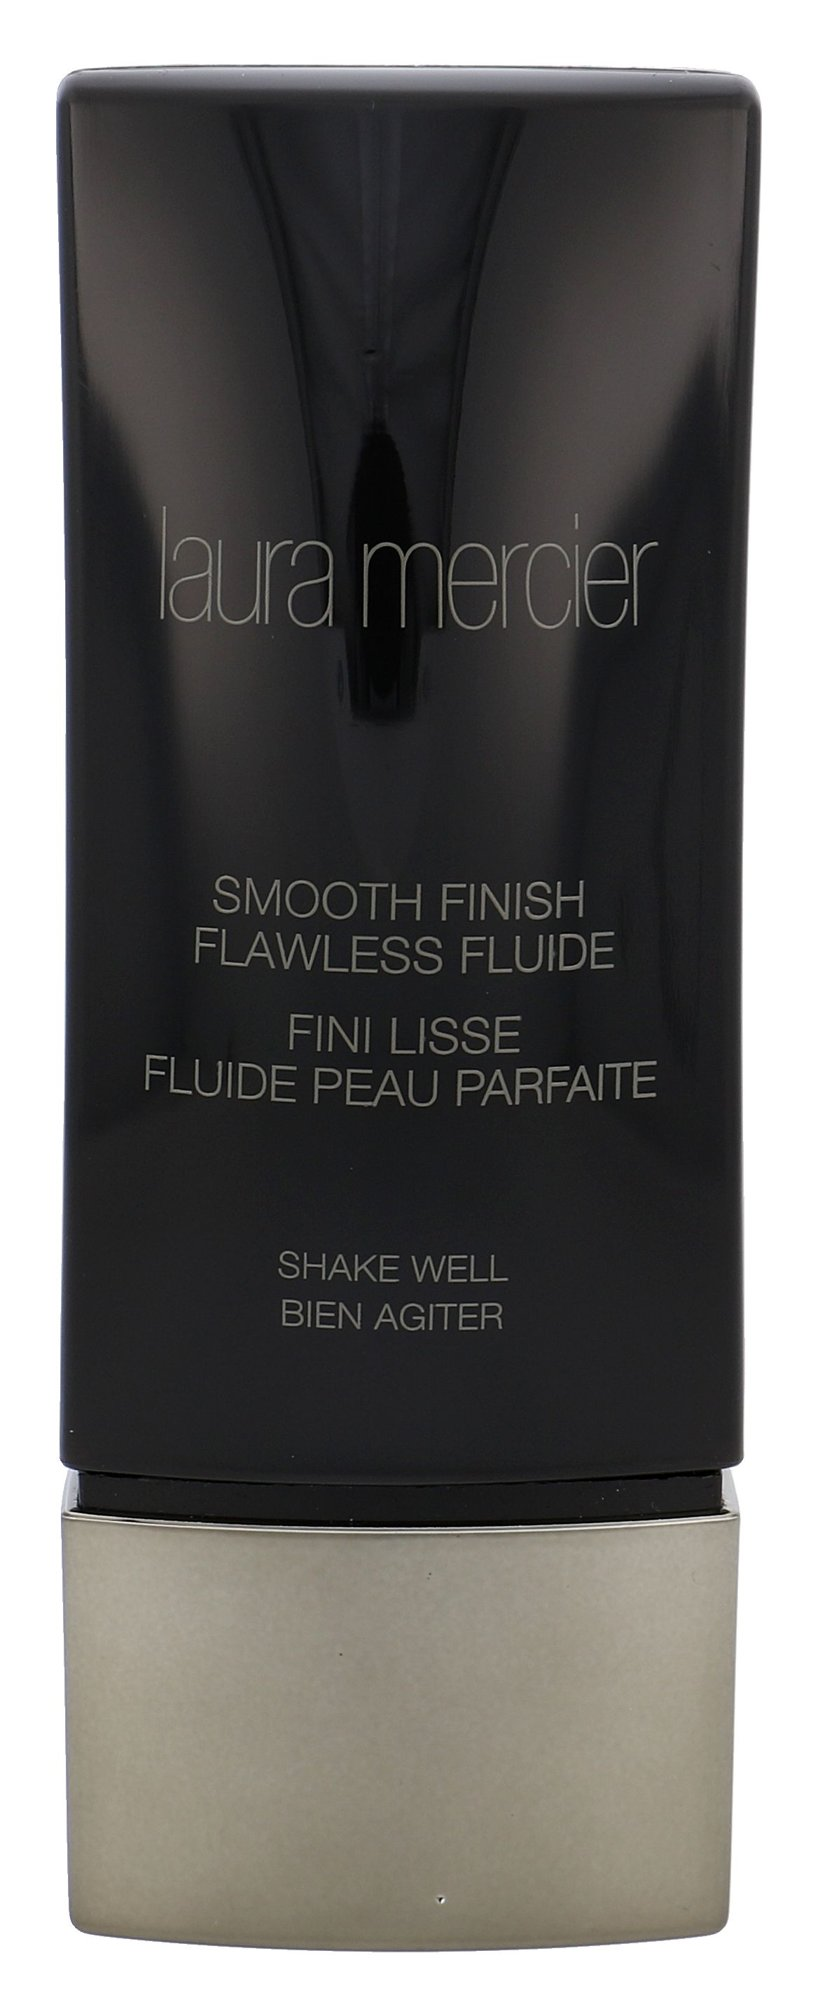 Laura Mercier Smooth Finish Flawless Fluide Cosmetic 30ml Créme